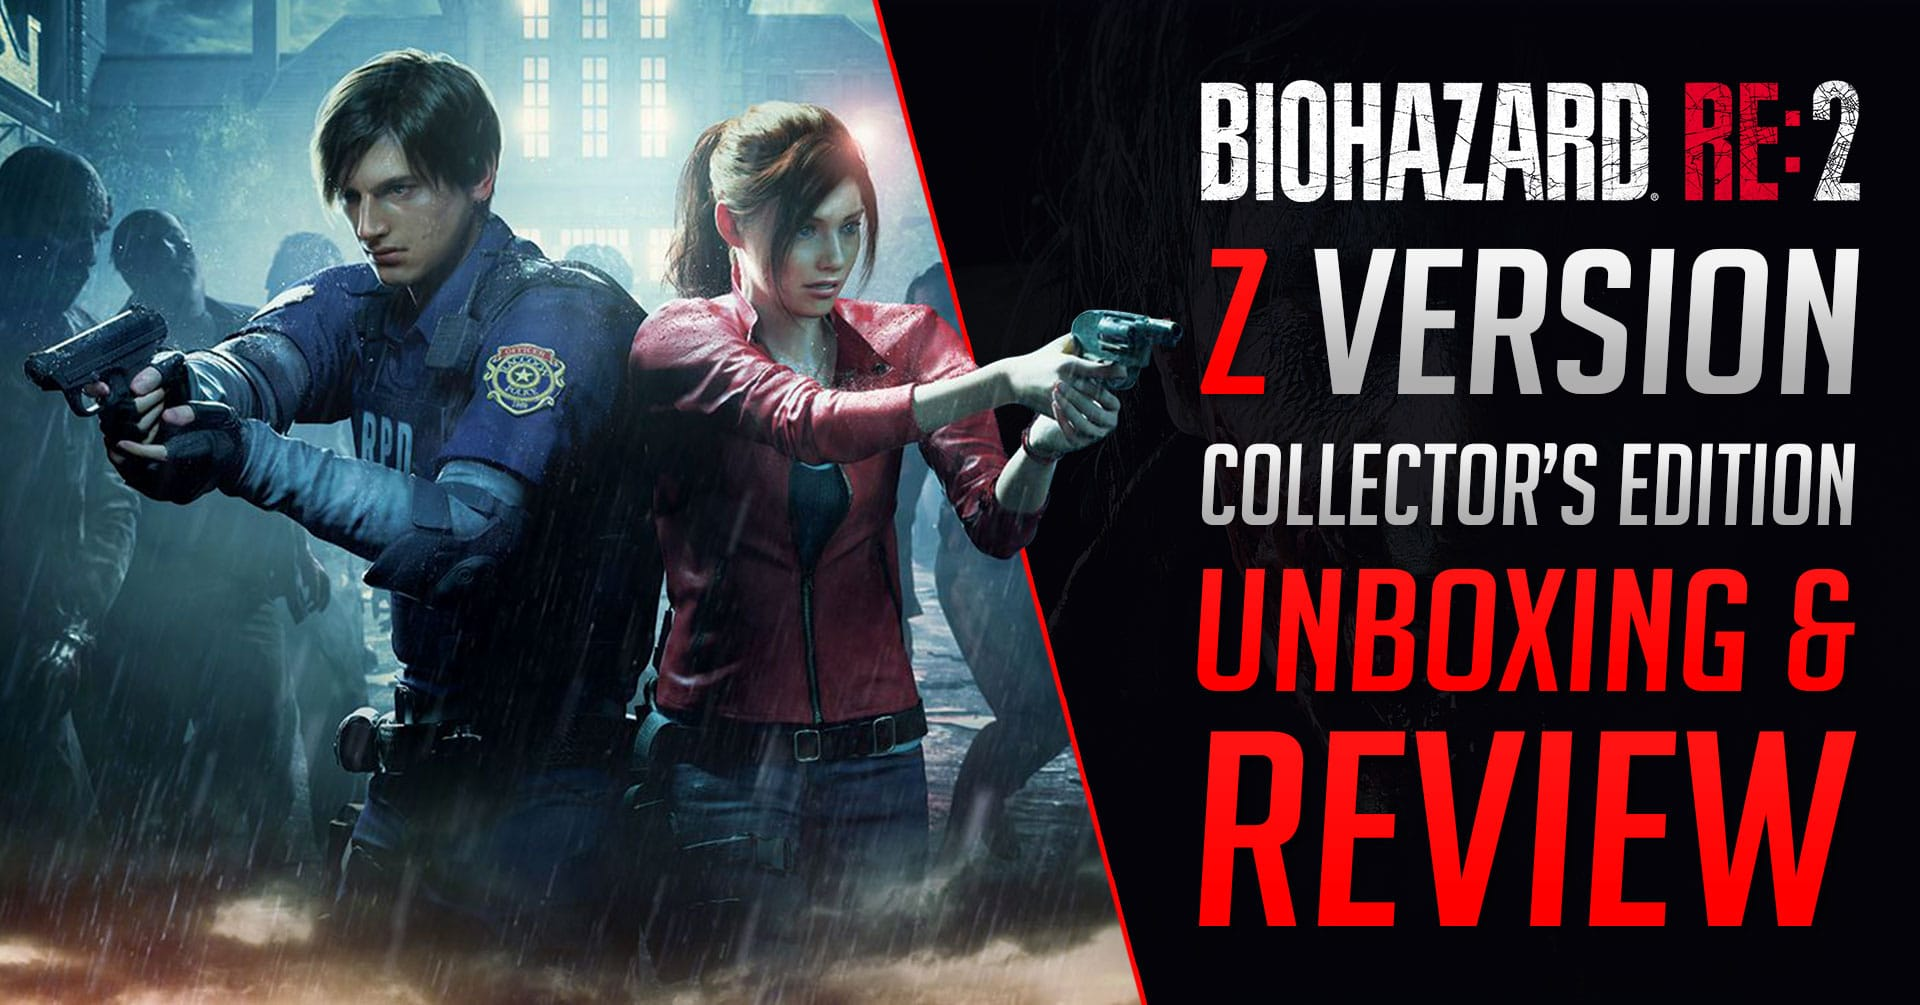 Resident Evil 2 Collector's Edition – Unboxing & Review